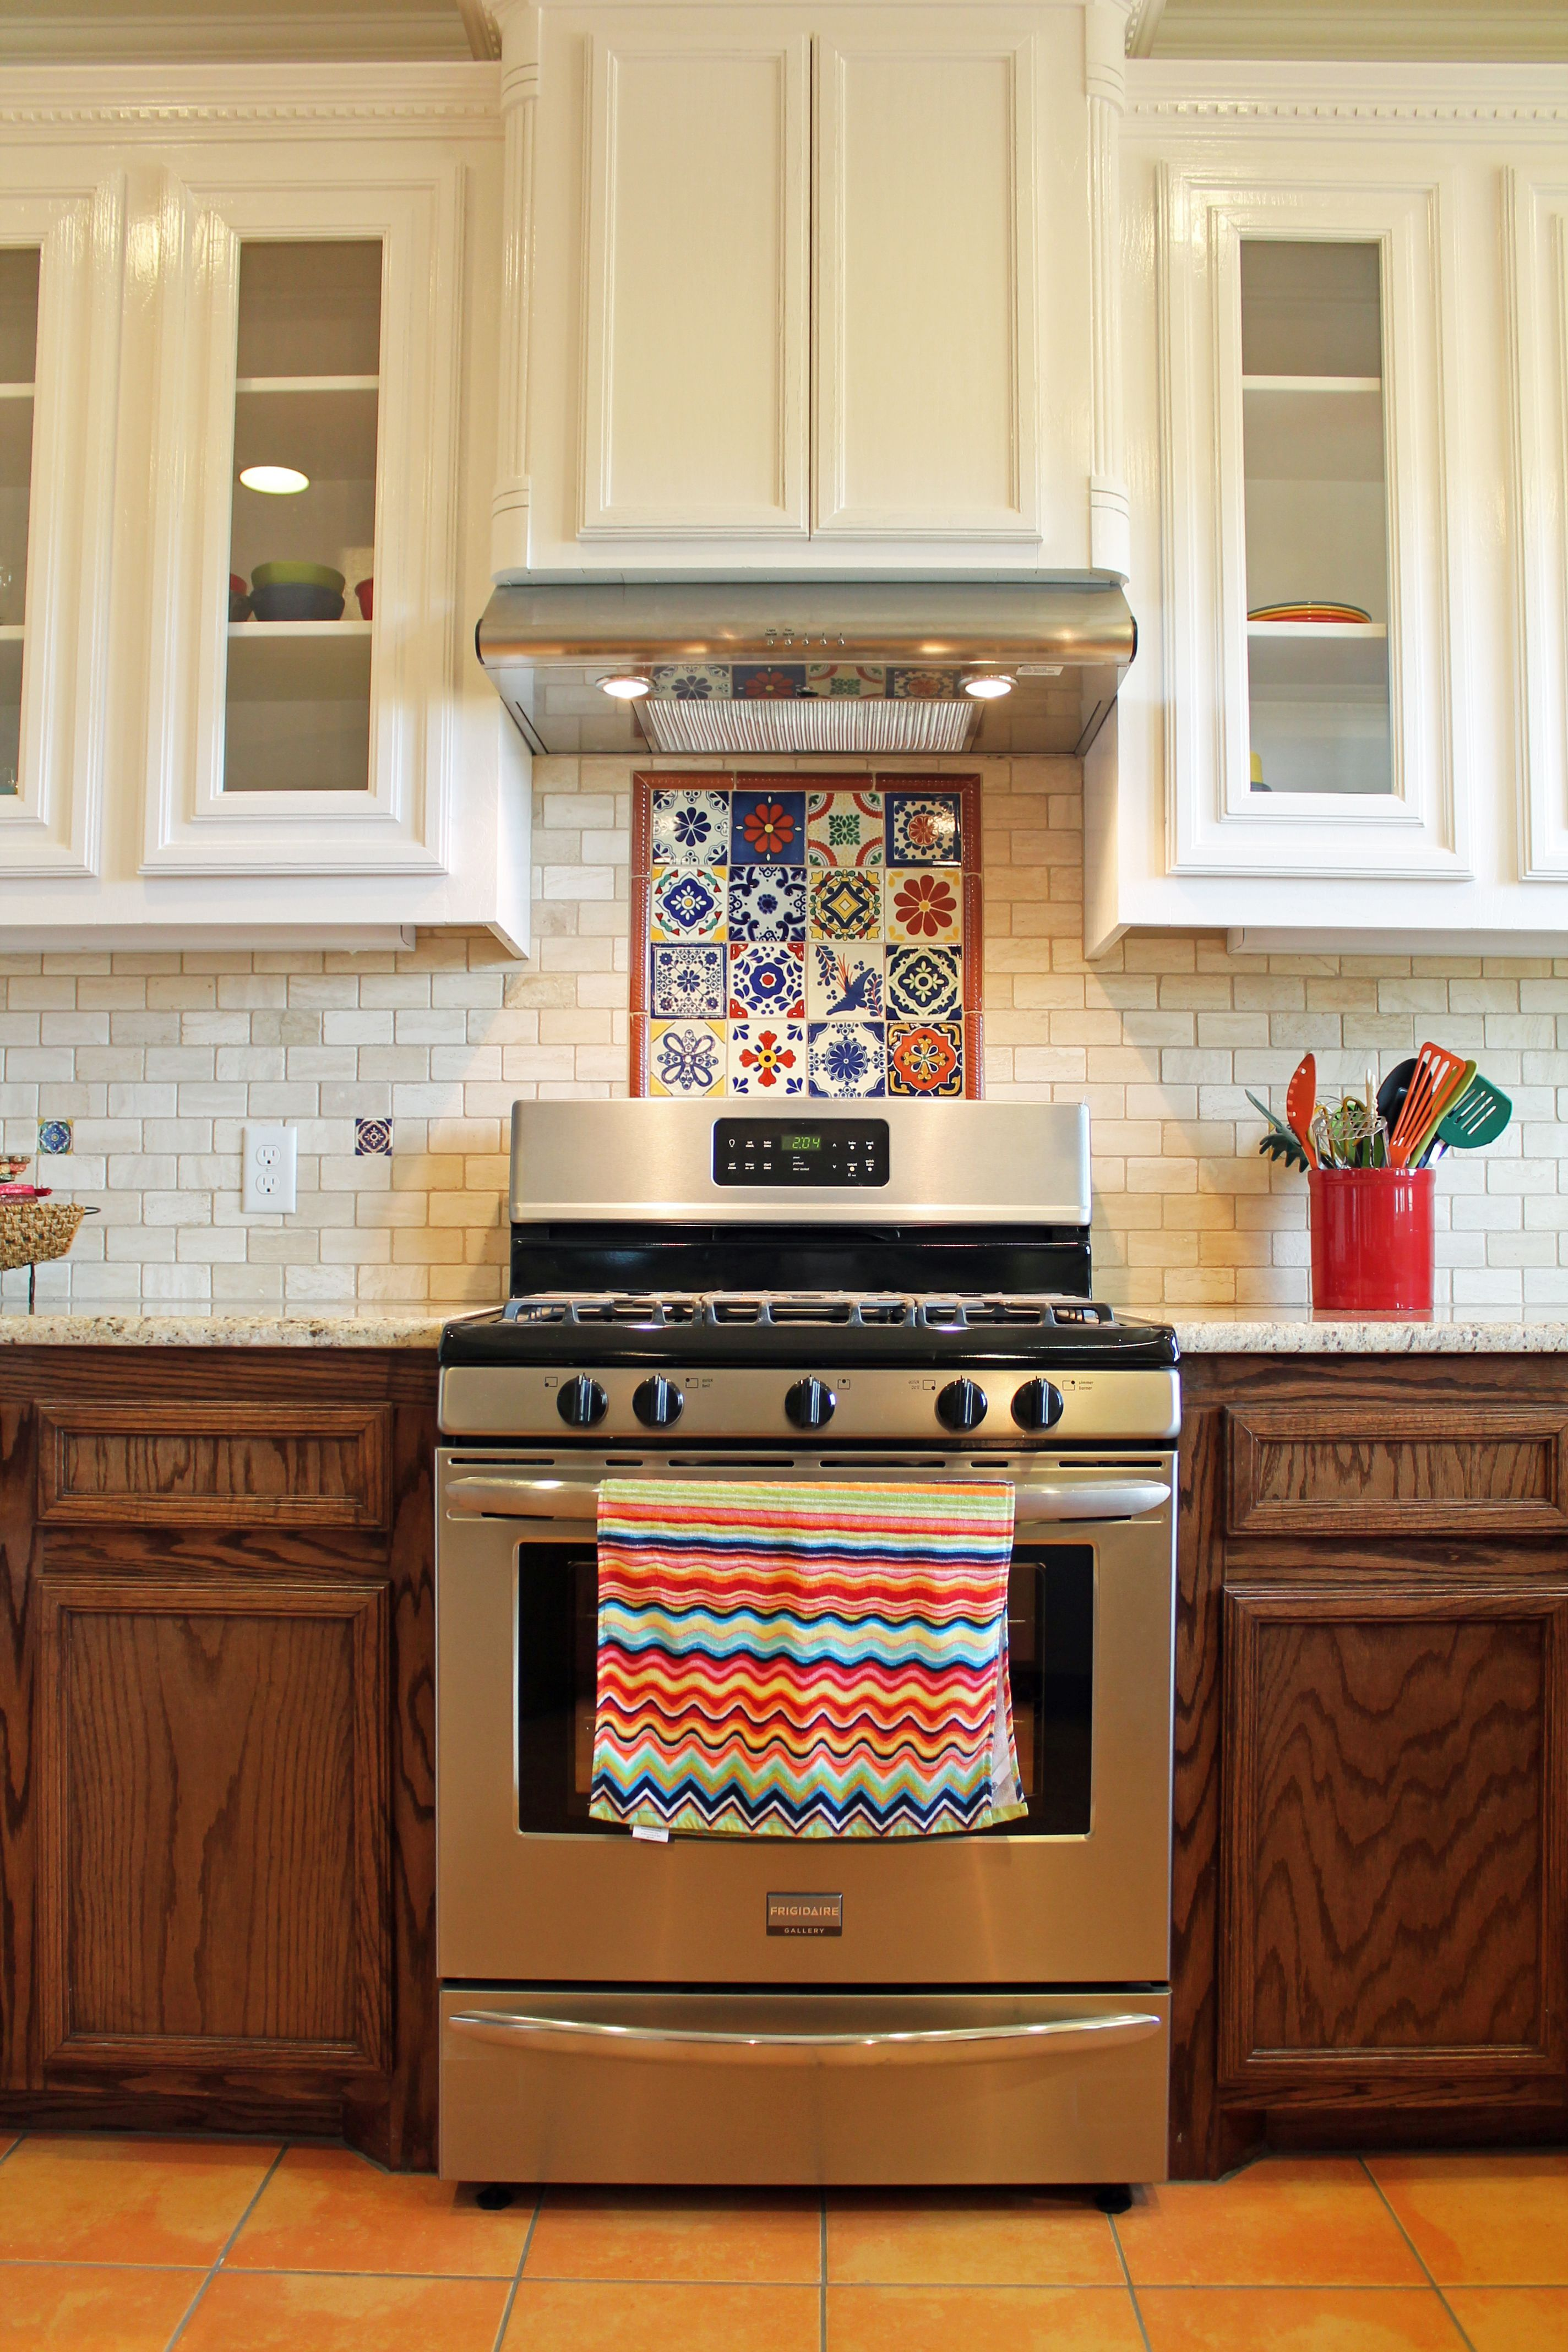 Spanish Tile Countertops Spanish Style Kitchen Design With Saltillo Tile Floors